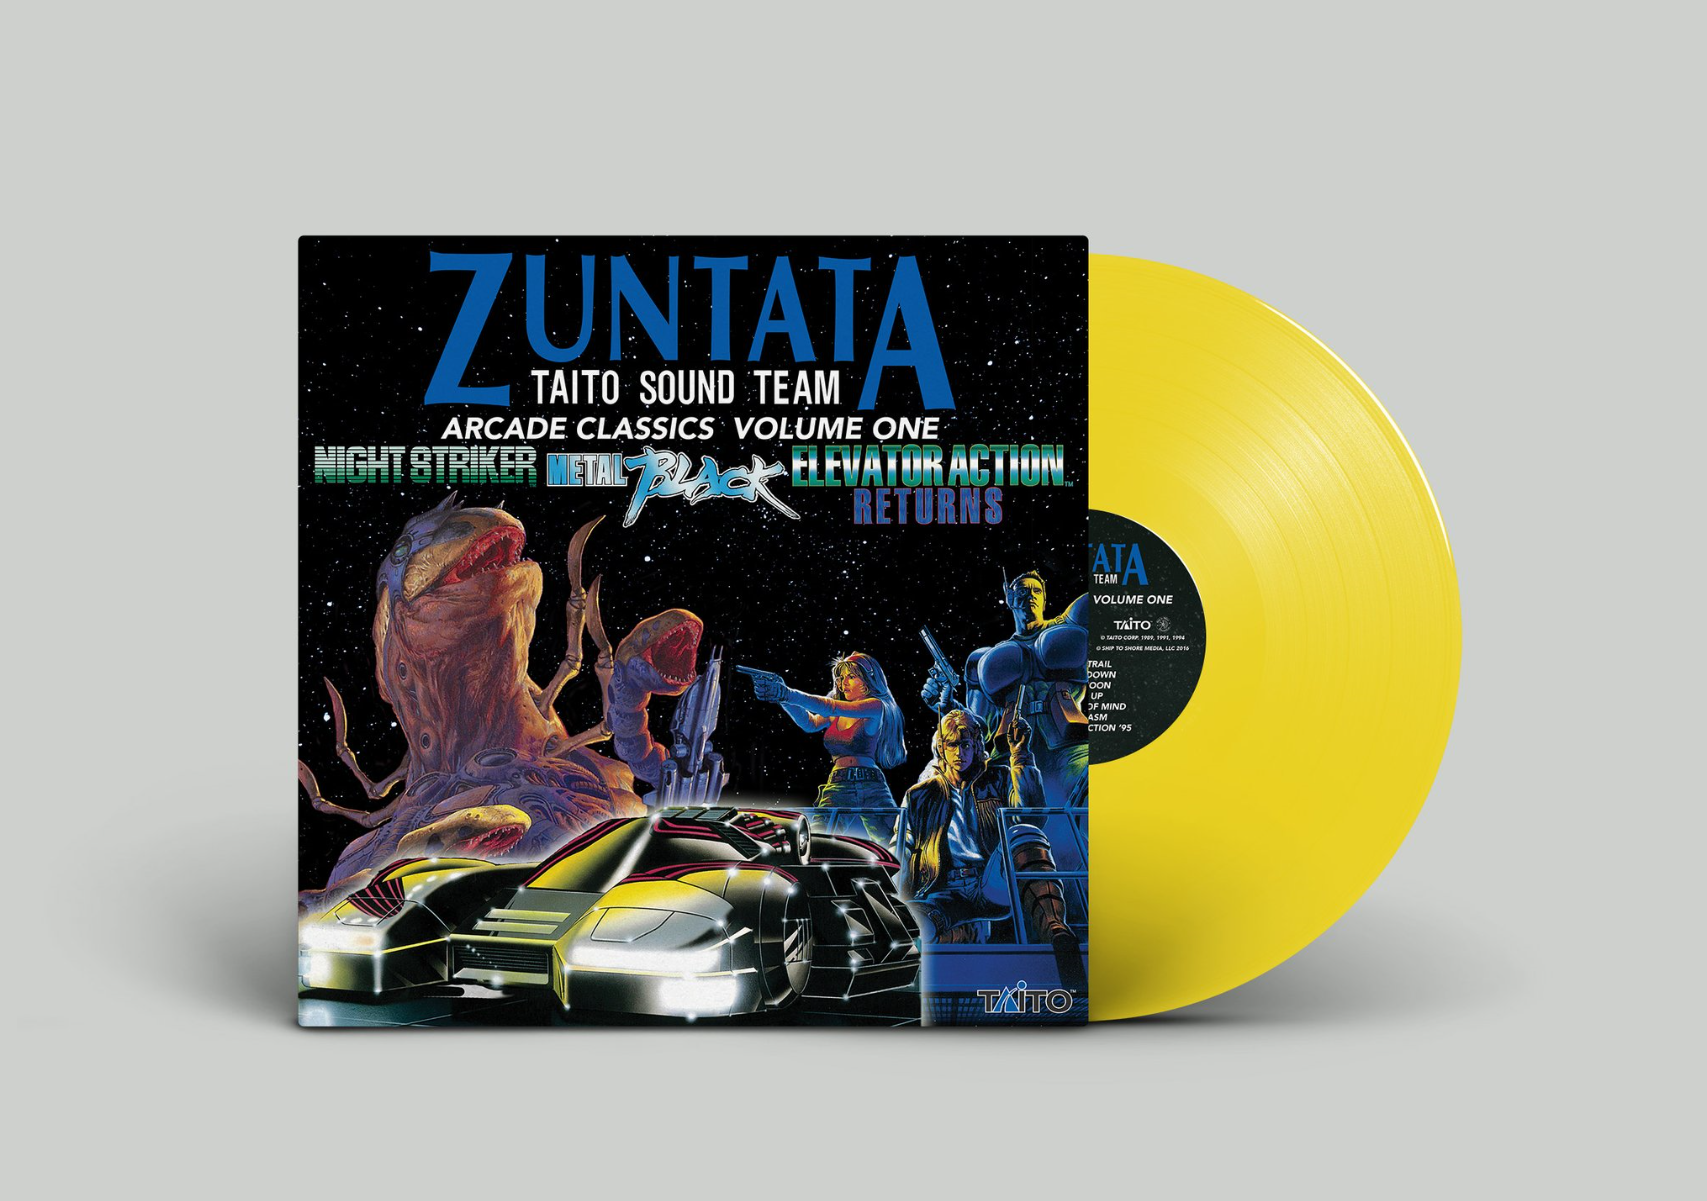 Zuntata Arcade Classics Volume One - Mockup Yellow